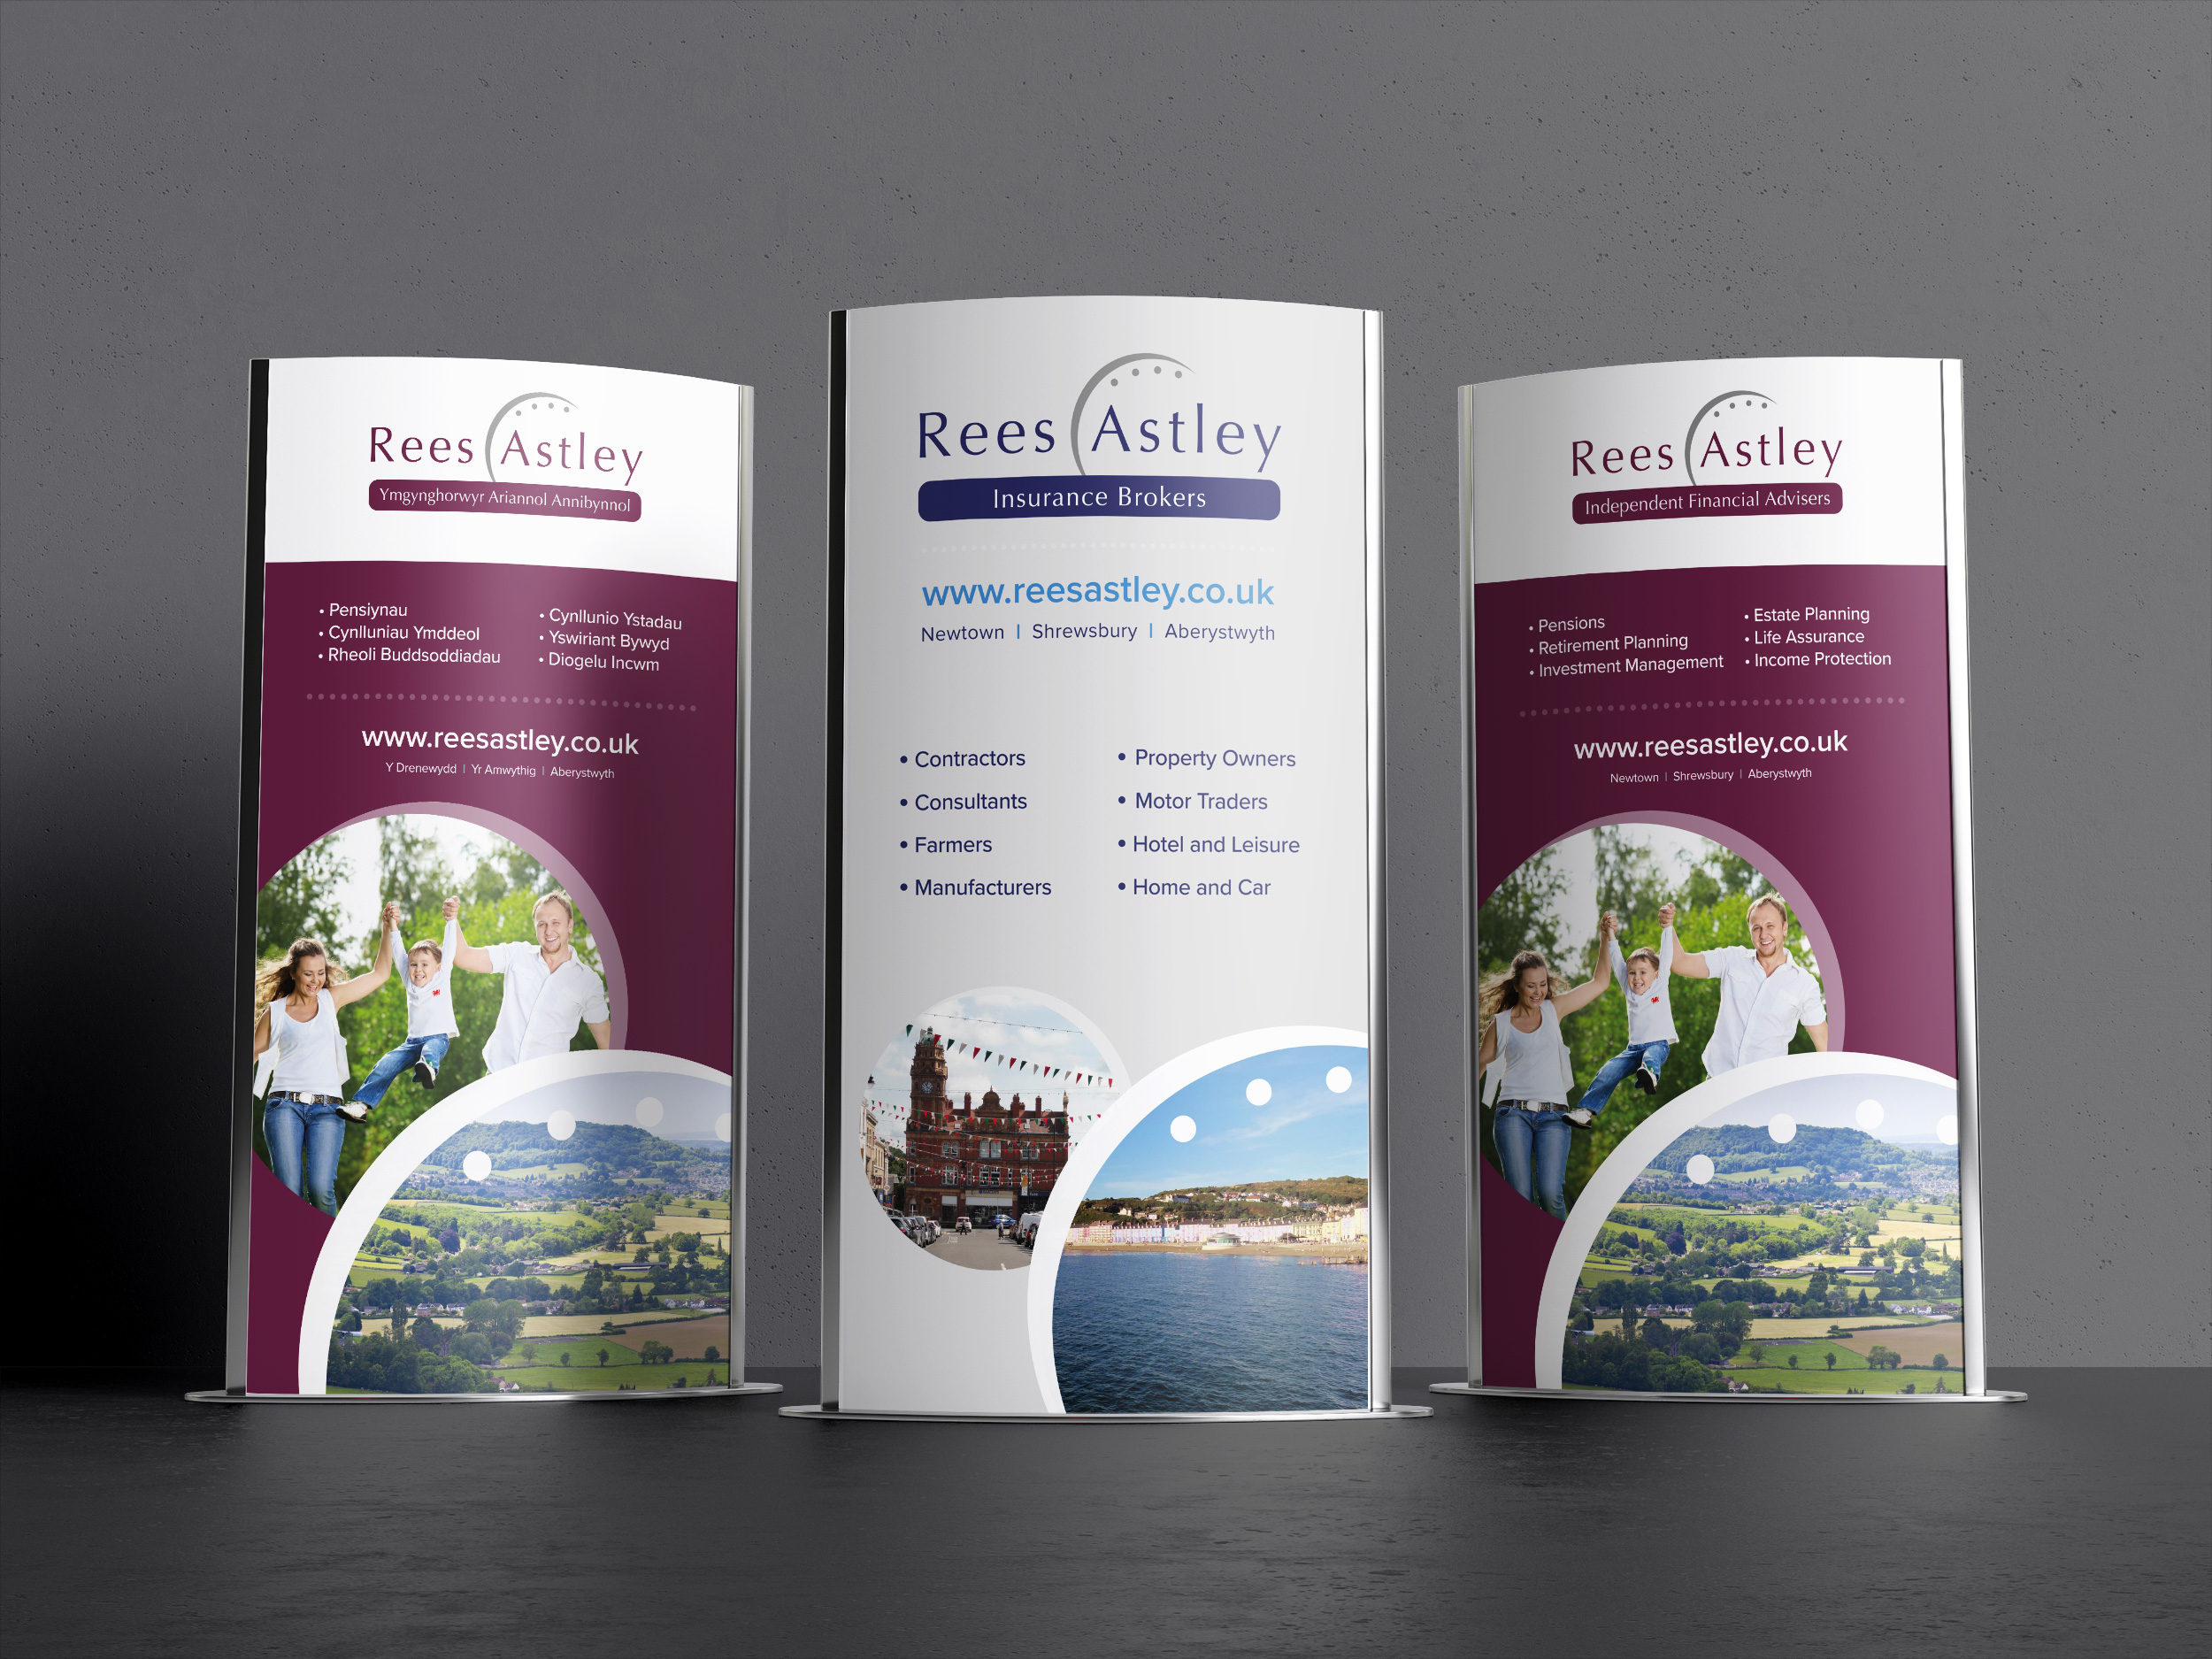 Rees Astley banners